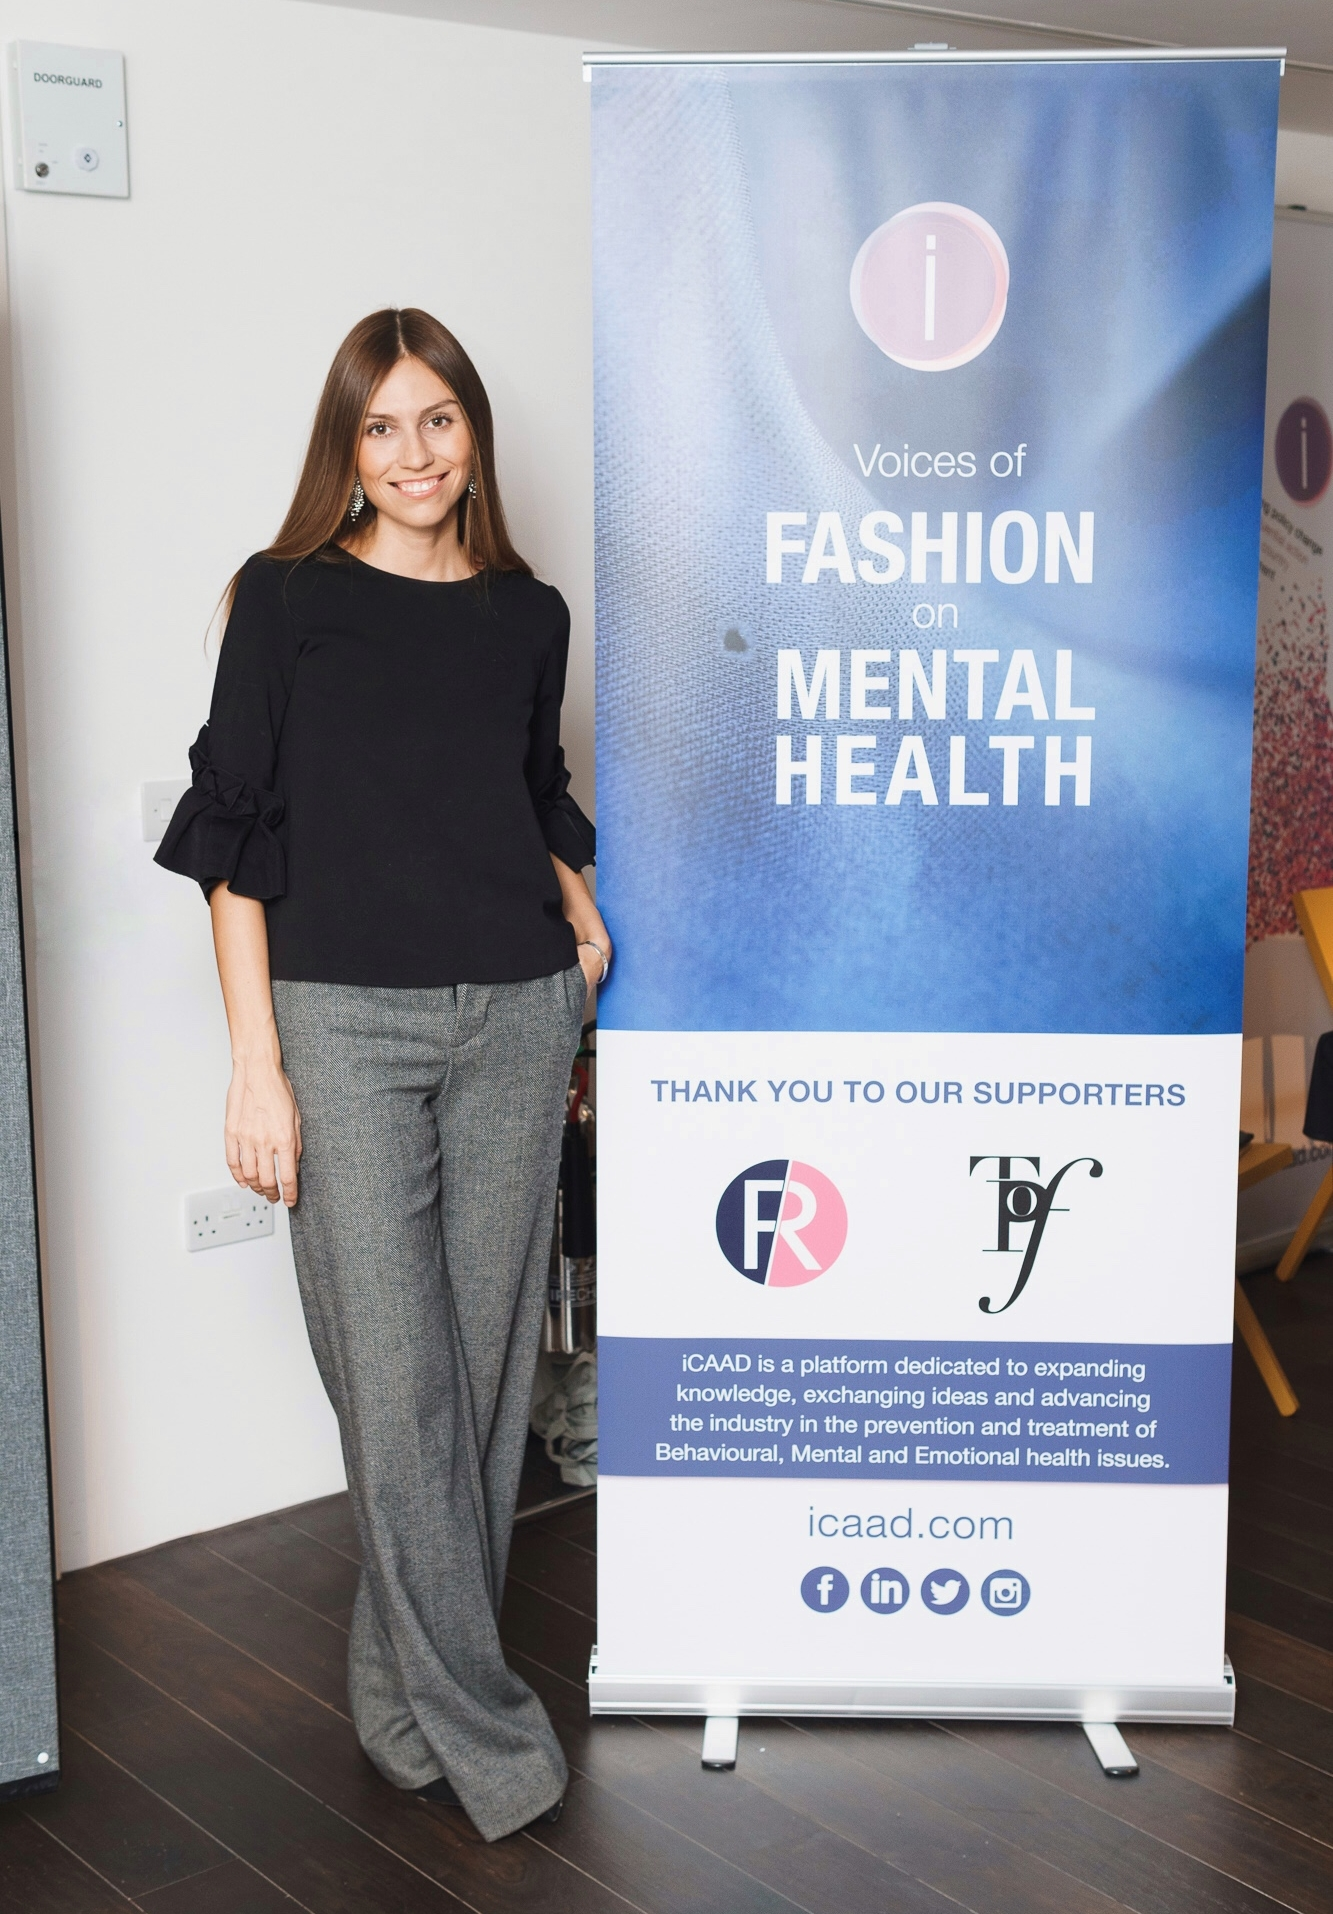 The Psychology of Fashion was one of iCAAD's partners for The Voices of Fashion on Mental Health conference.